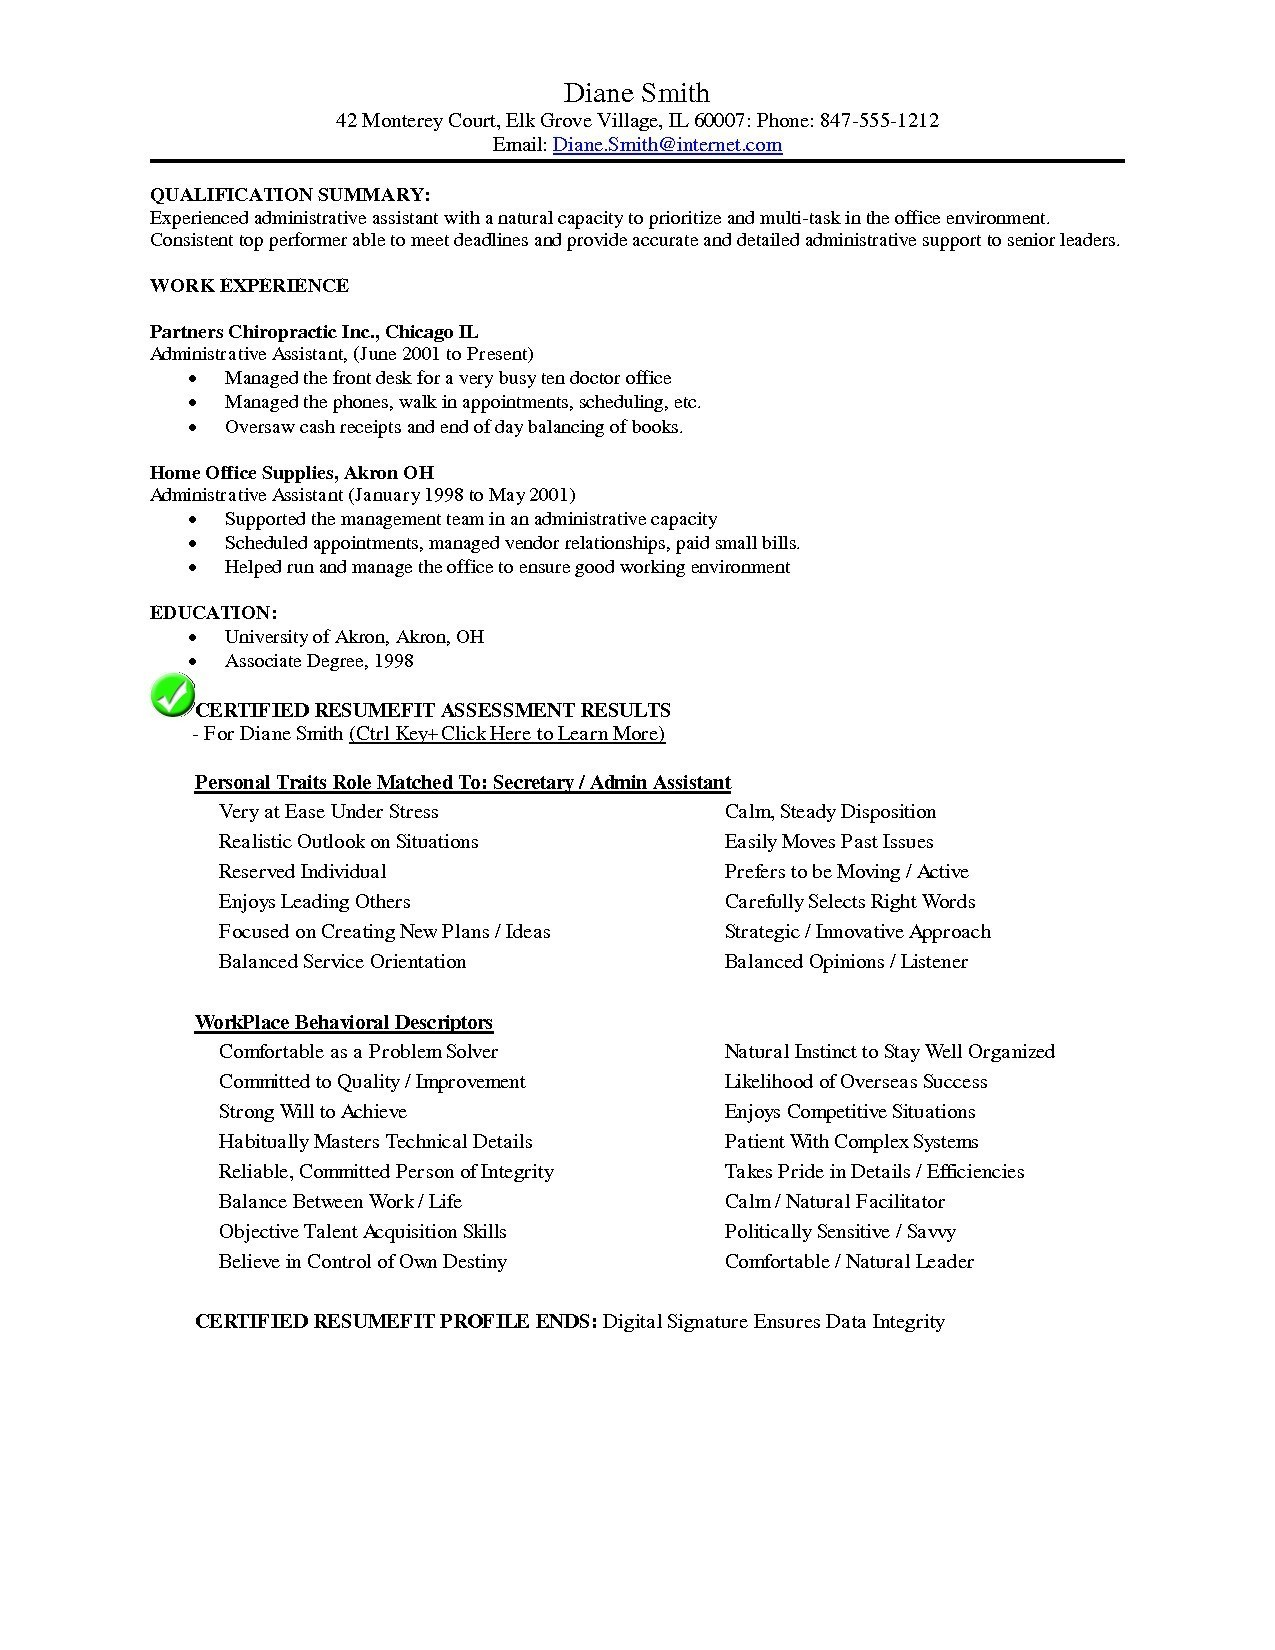 Ability To Handle Confidential Information Resume Awesome Chicago Resume Template Valid Unique Pr Resume Template Elegant